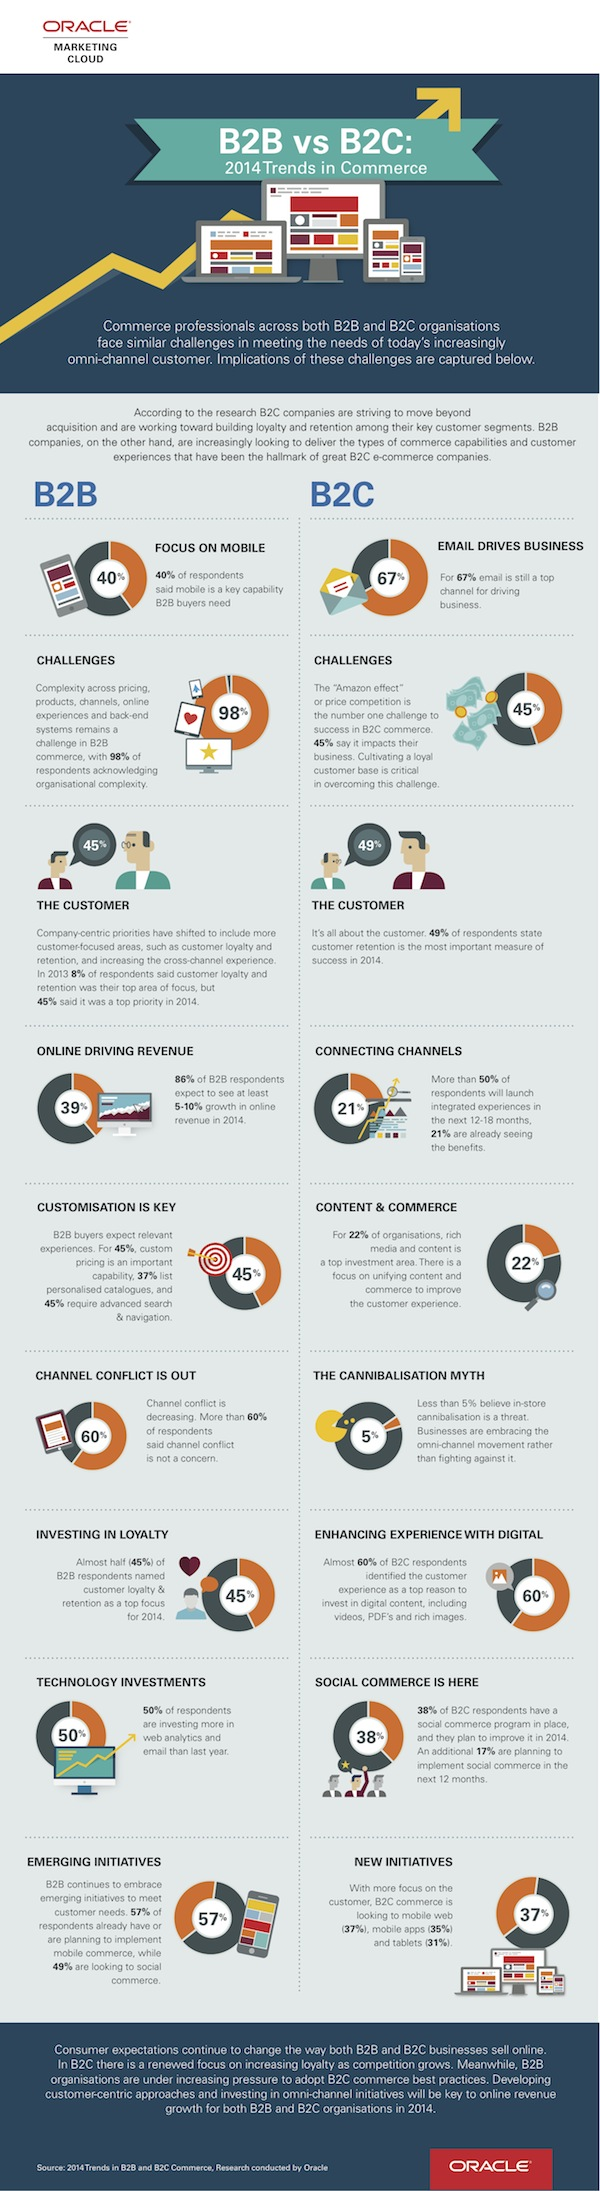 Infographic - B2B verses B2C Trends in Commerce